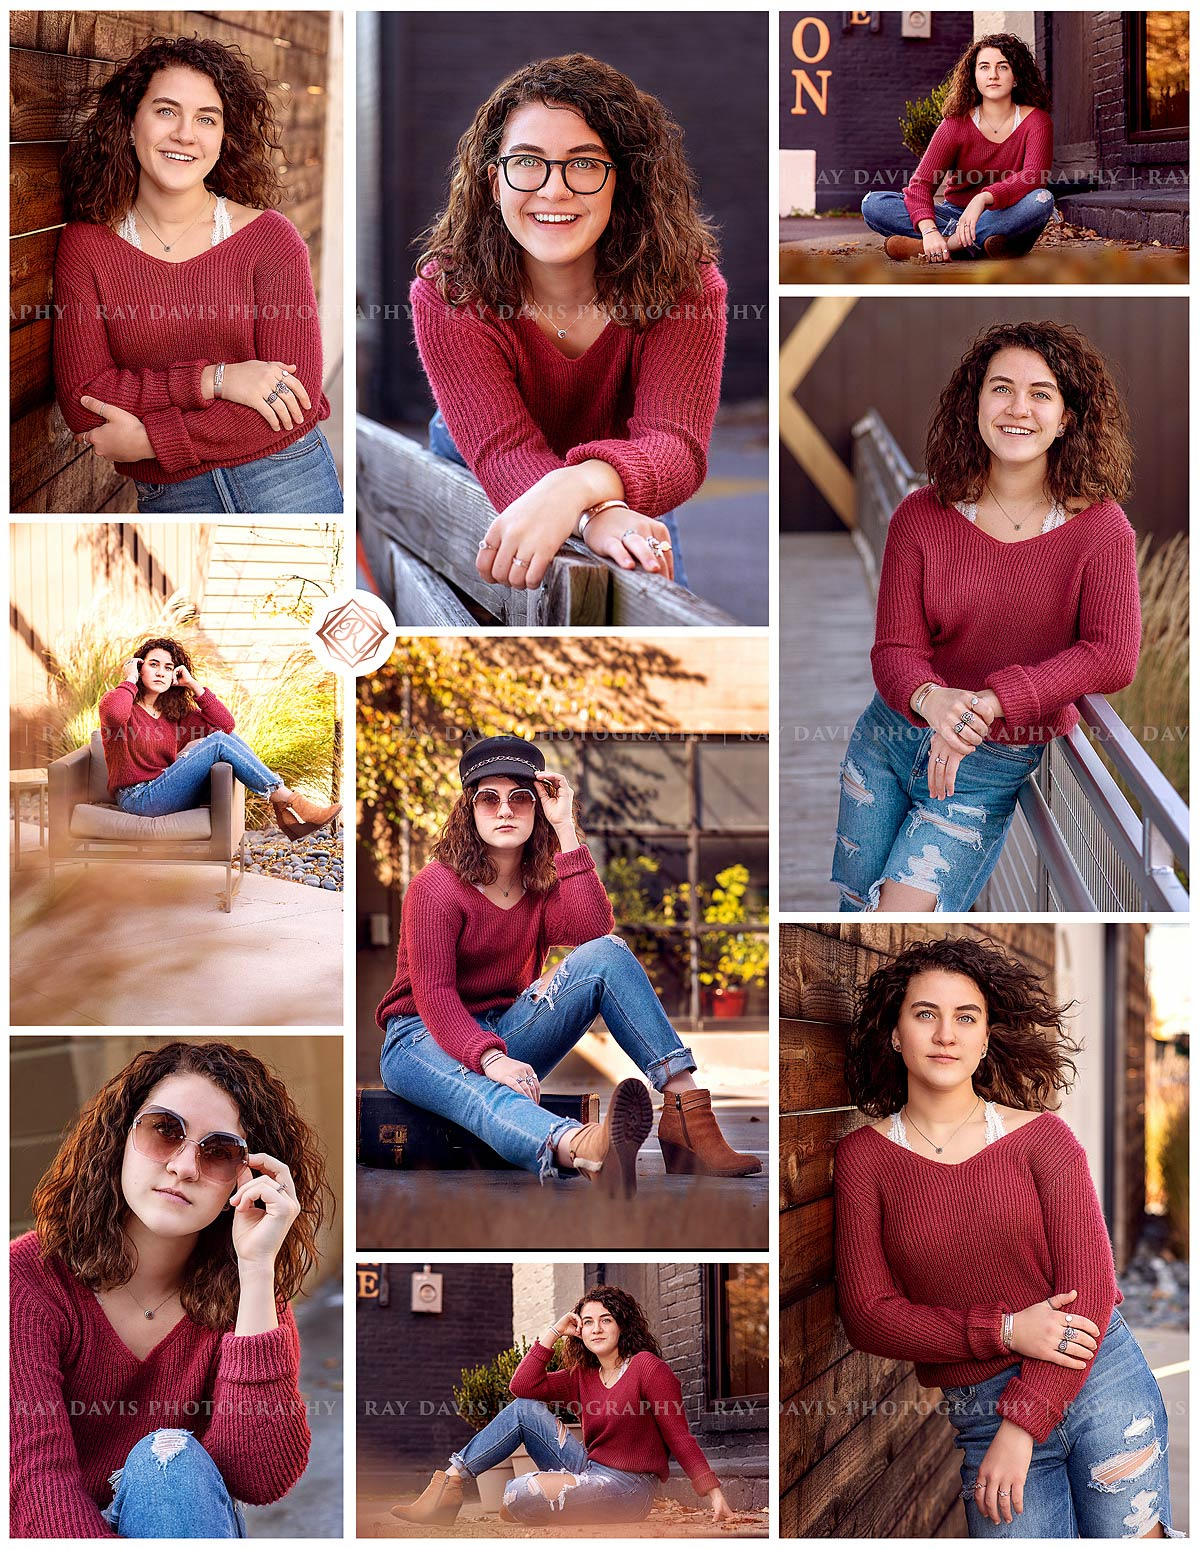 Louisville Nulu senior pictures in fall of girl wearing red sweater by Ray Davis Photography